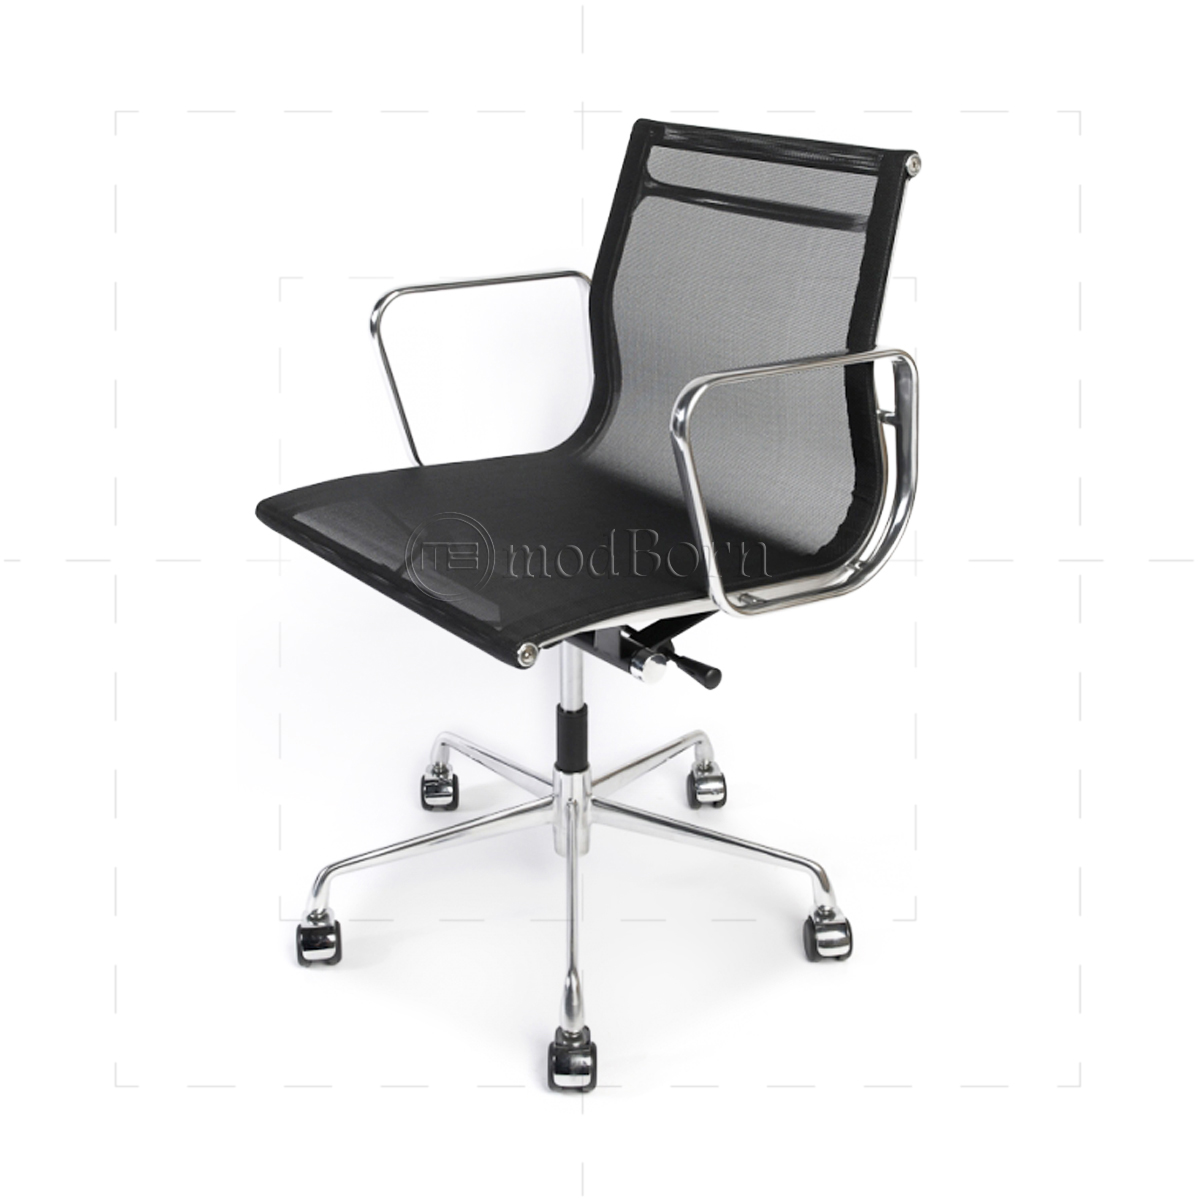 ea117 eames style office mesh chair low back ribbed black fabric replica. Black Bedroom Furniture Sets. Home Design Ideas